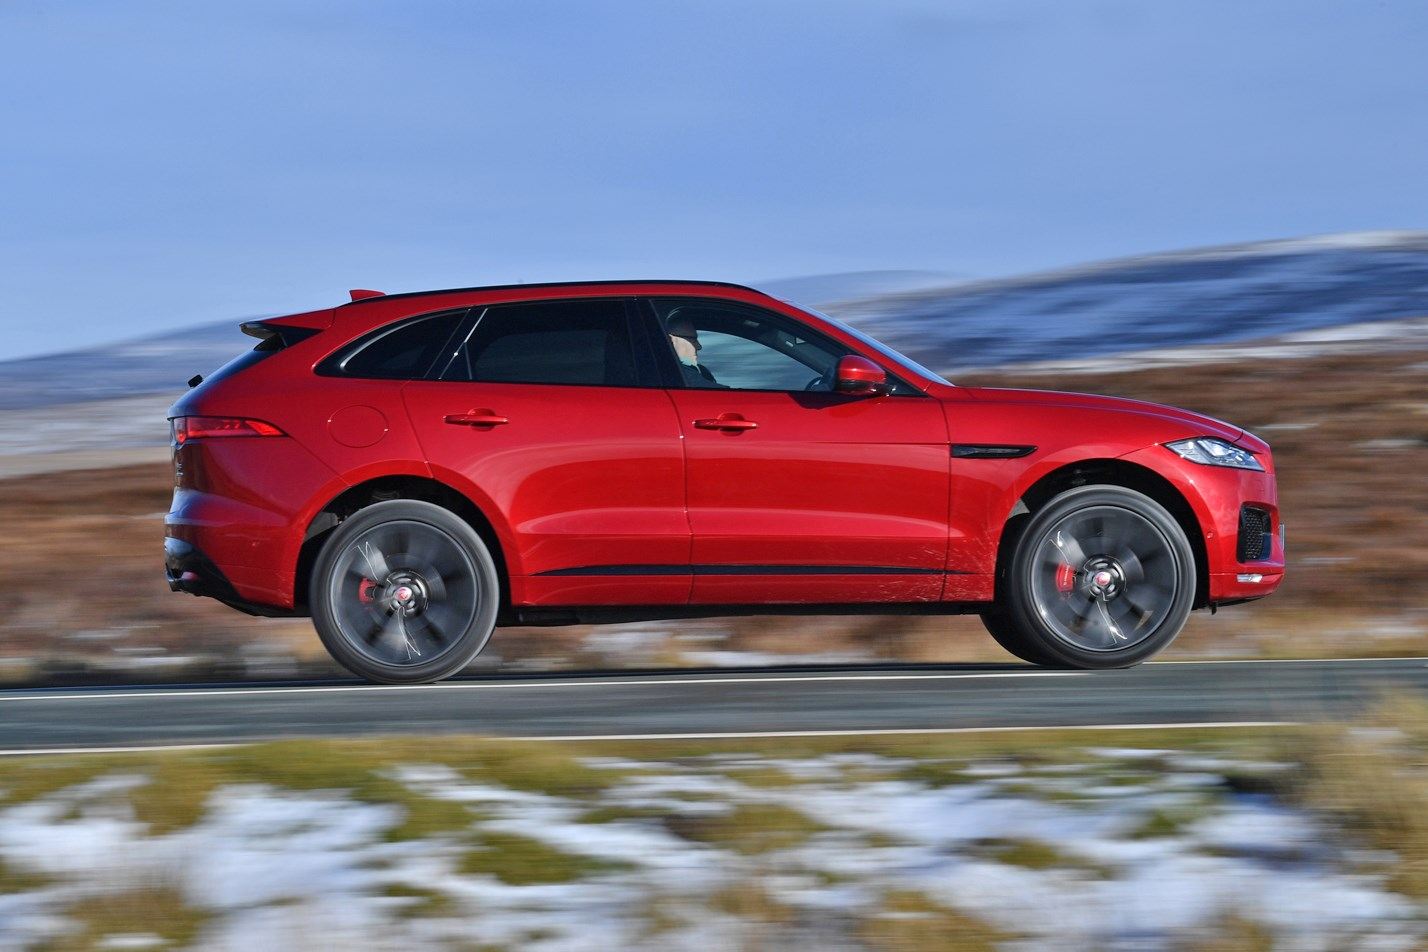 Red 2016 Jaguar F-Pace SUV side elevation driving